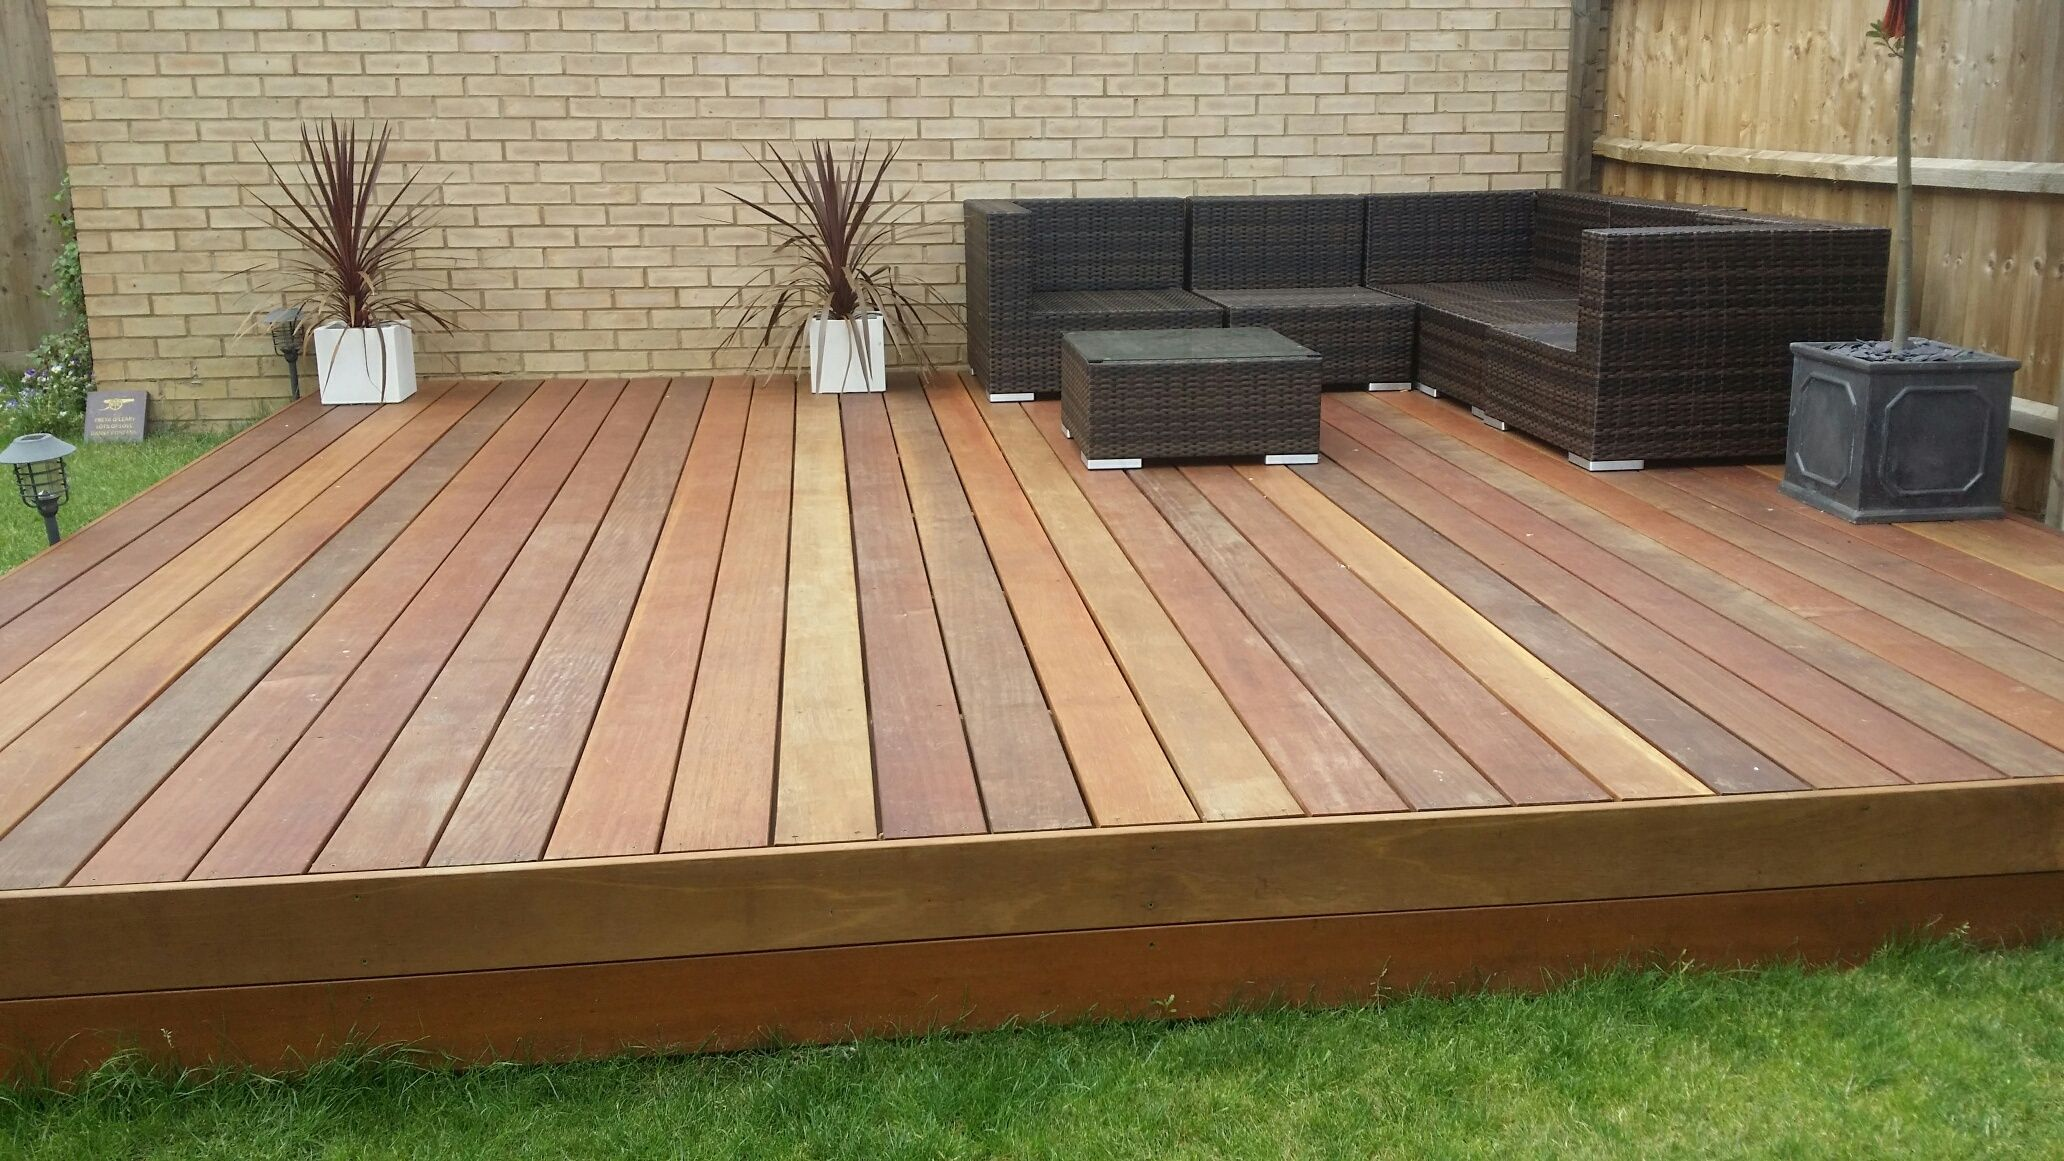 raised decking ideas uk Google Search Patio